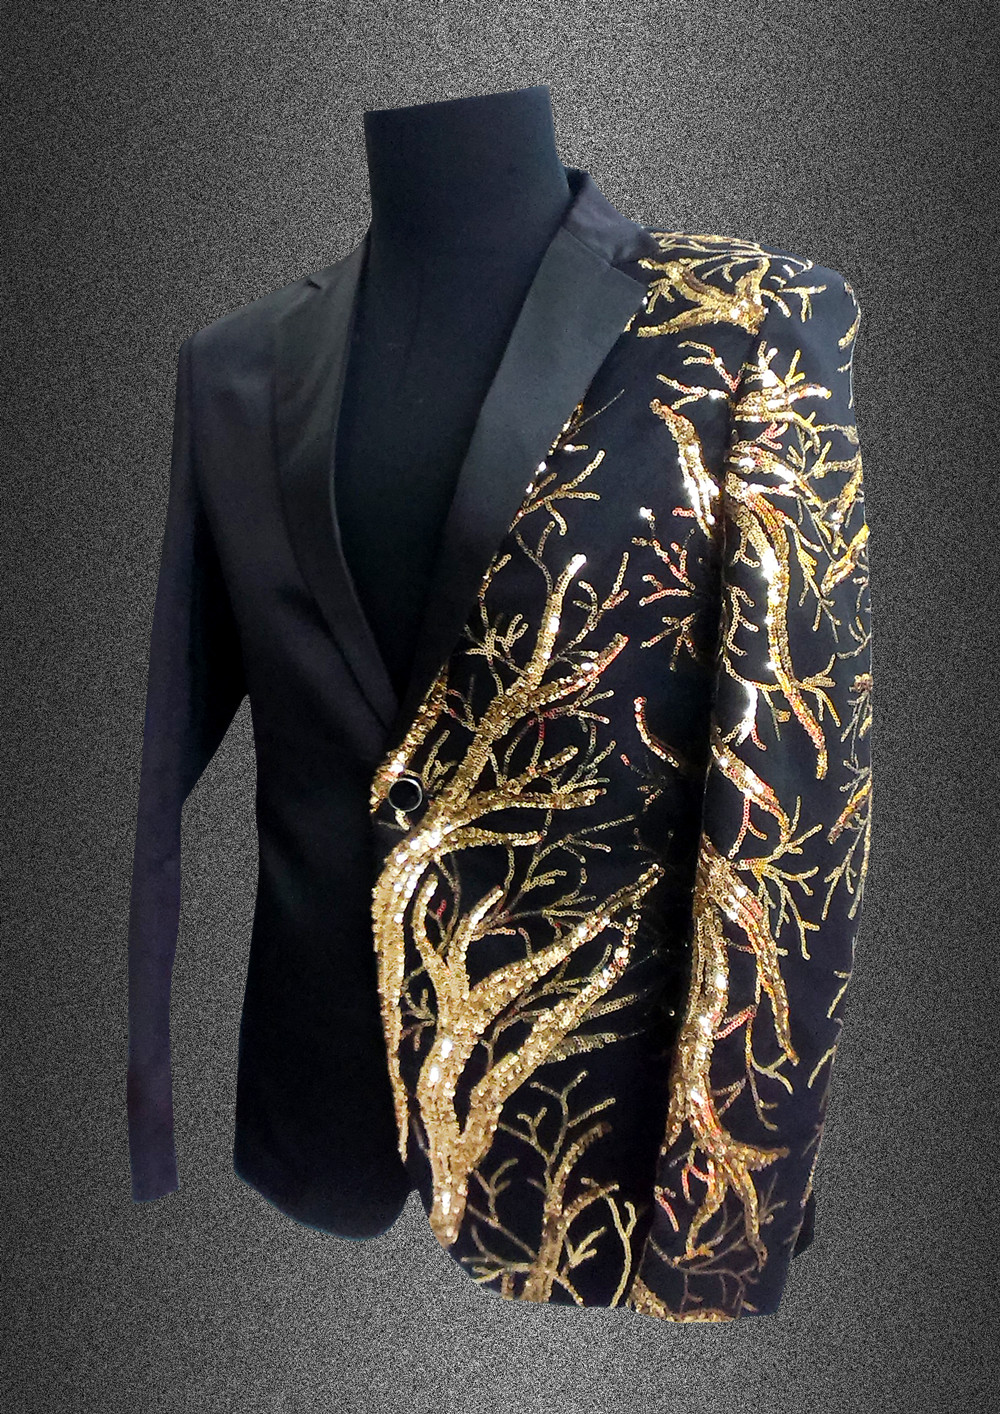 singer blazer Male formal dress costume men's clothing paillette suits clothes for dancer star performance nightclub party bar 3